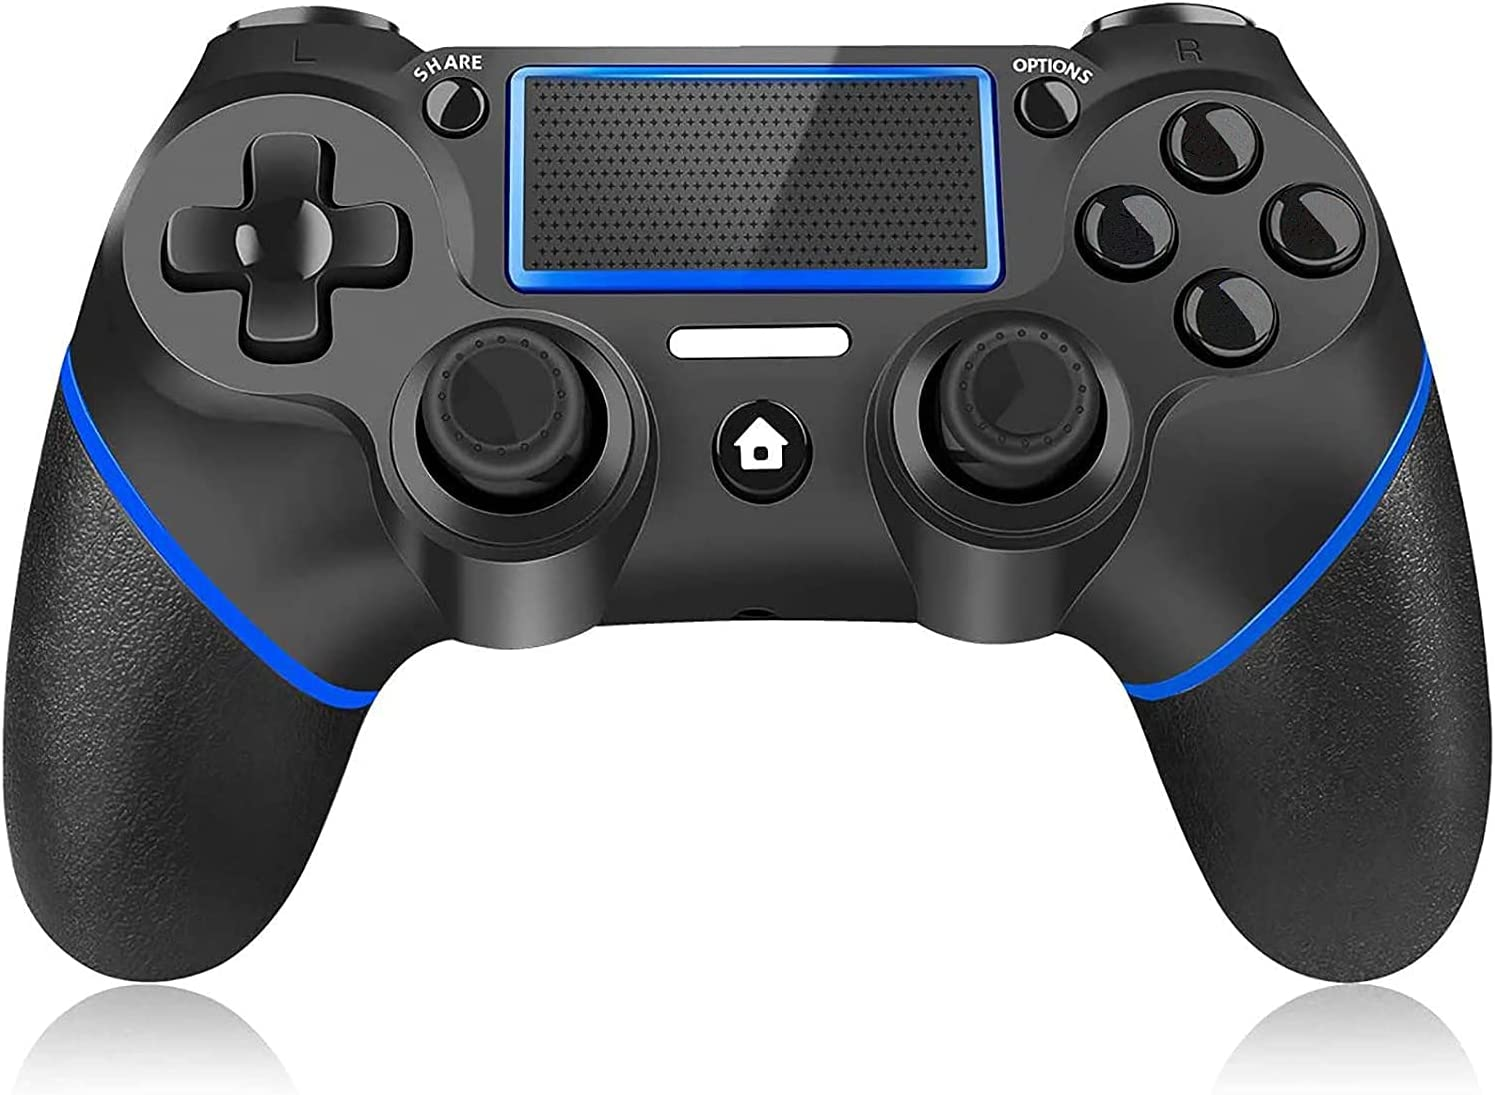 Controller for PStation 4,Y Team Wireless PS-4 Controller for PS-4,Gamepad Joystick Remote Controller Compatible with PStation 4/Pro/Slim/PC,Dual Vibration/Audio Function/Charging Cable(Blue)